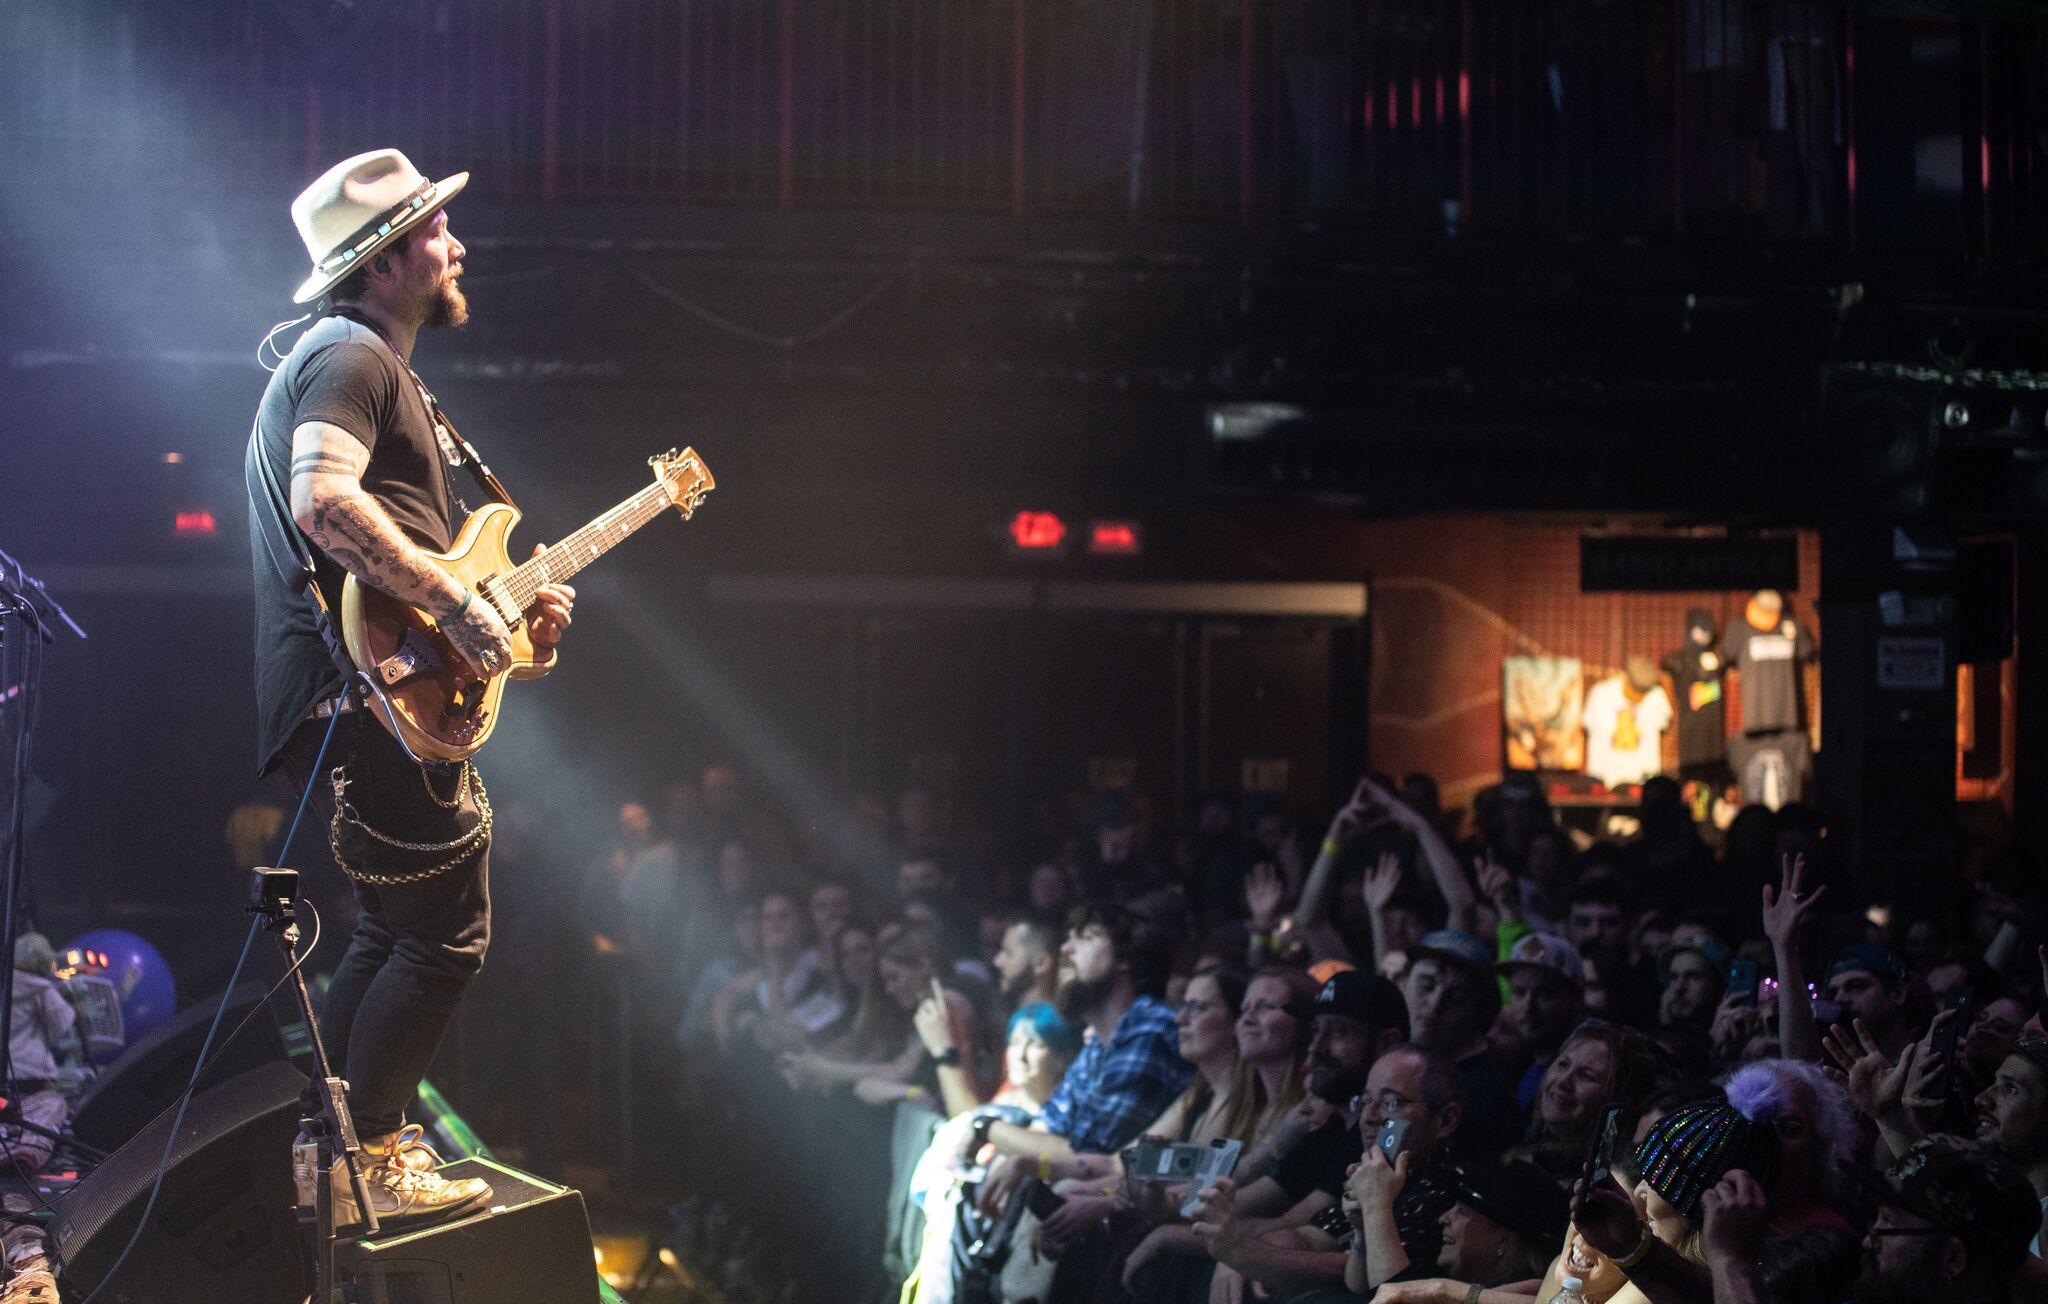 Mihali Announces New Album 'Breathe and Let Go'